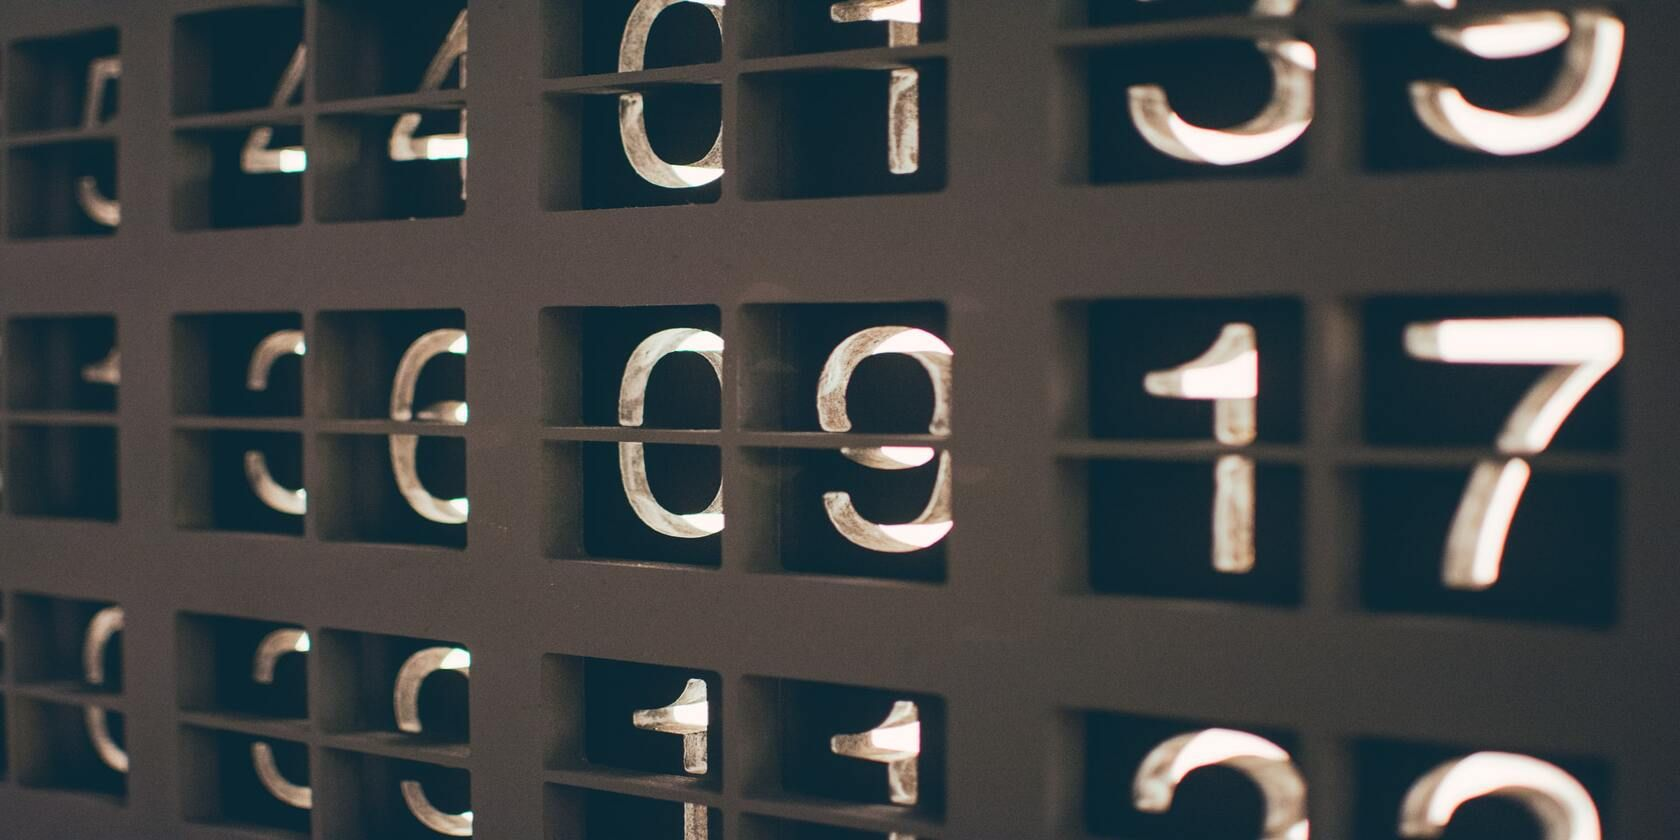 How to Count the Number of Digits in a Number Using C++, Python, and JavaScript